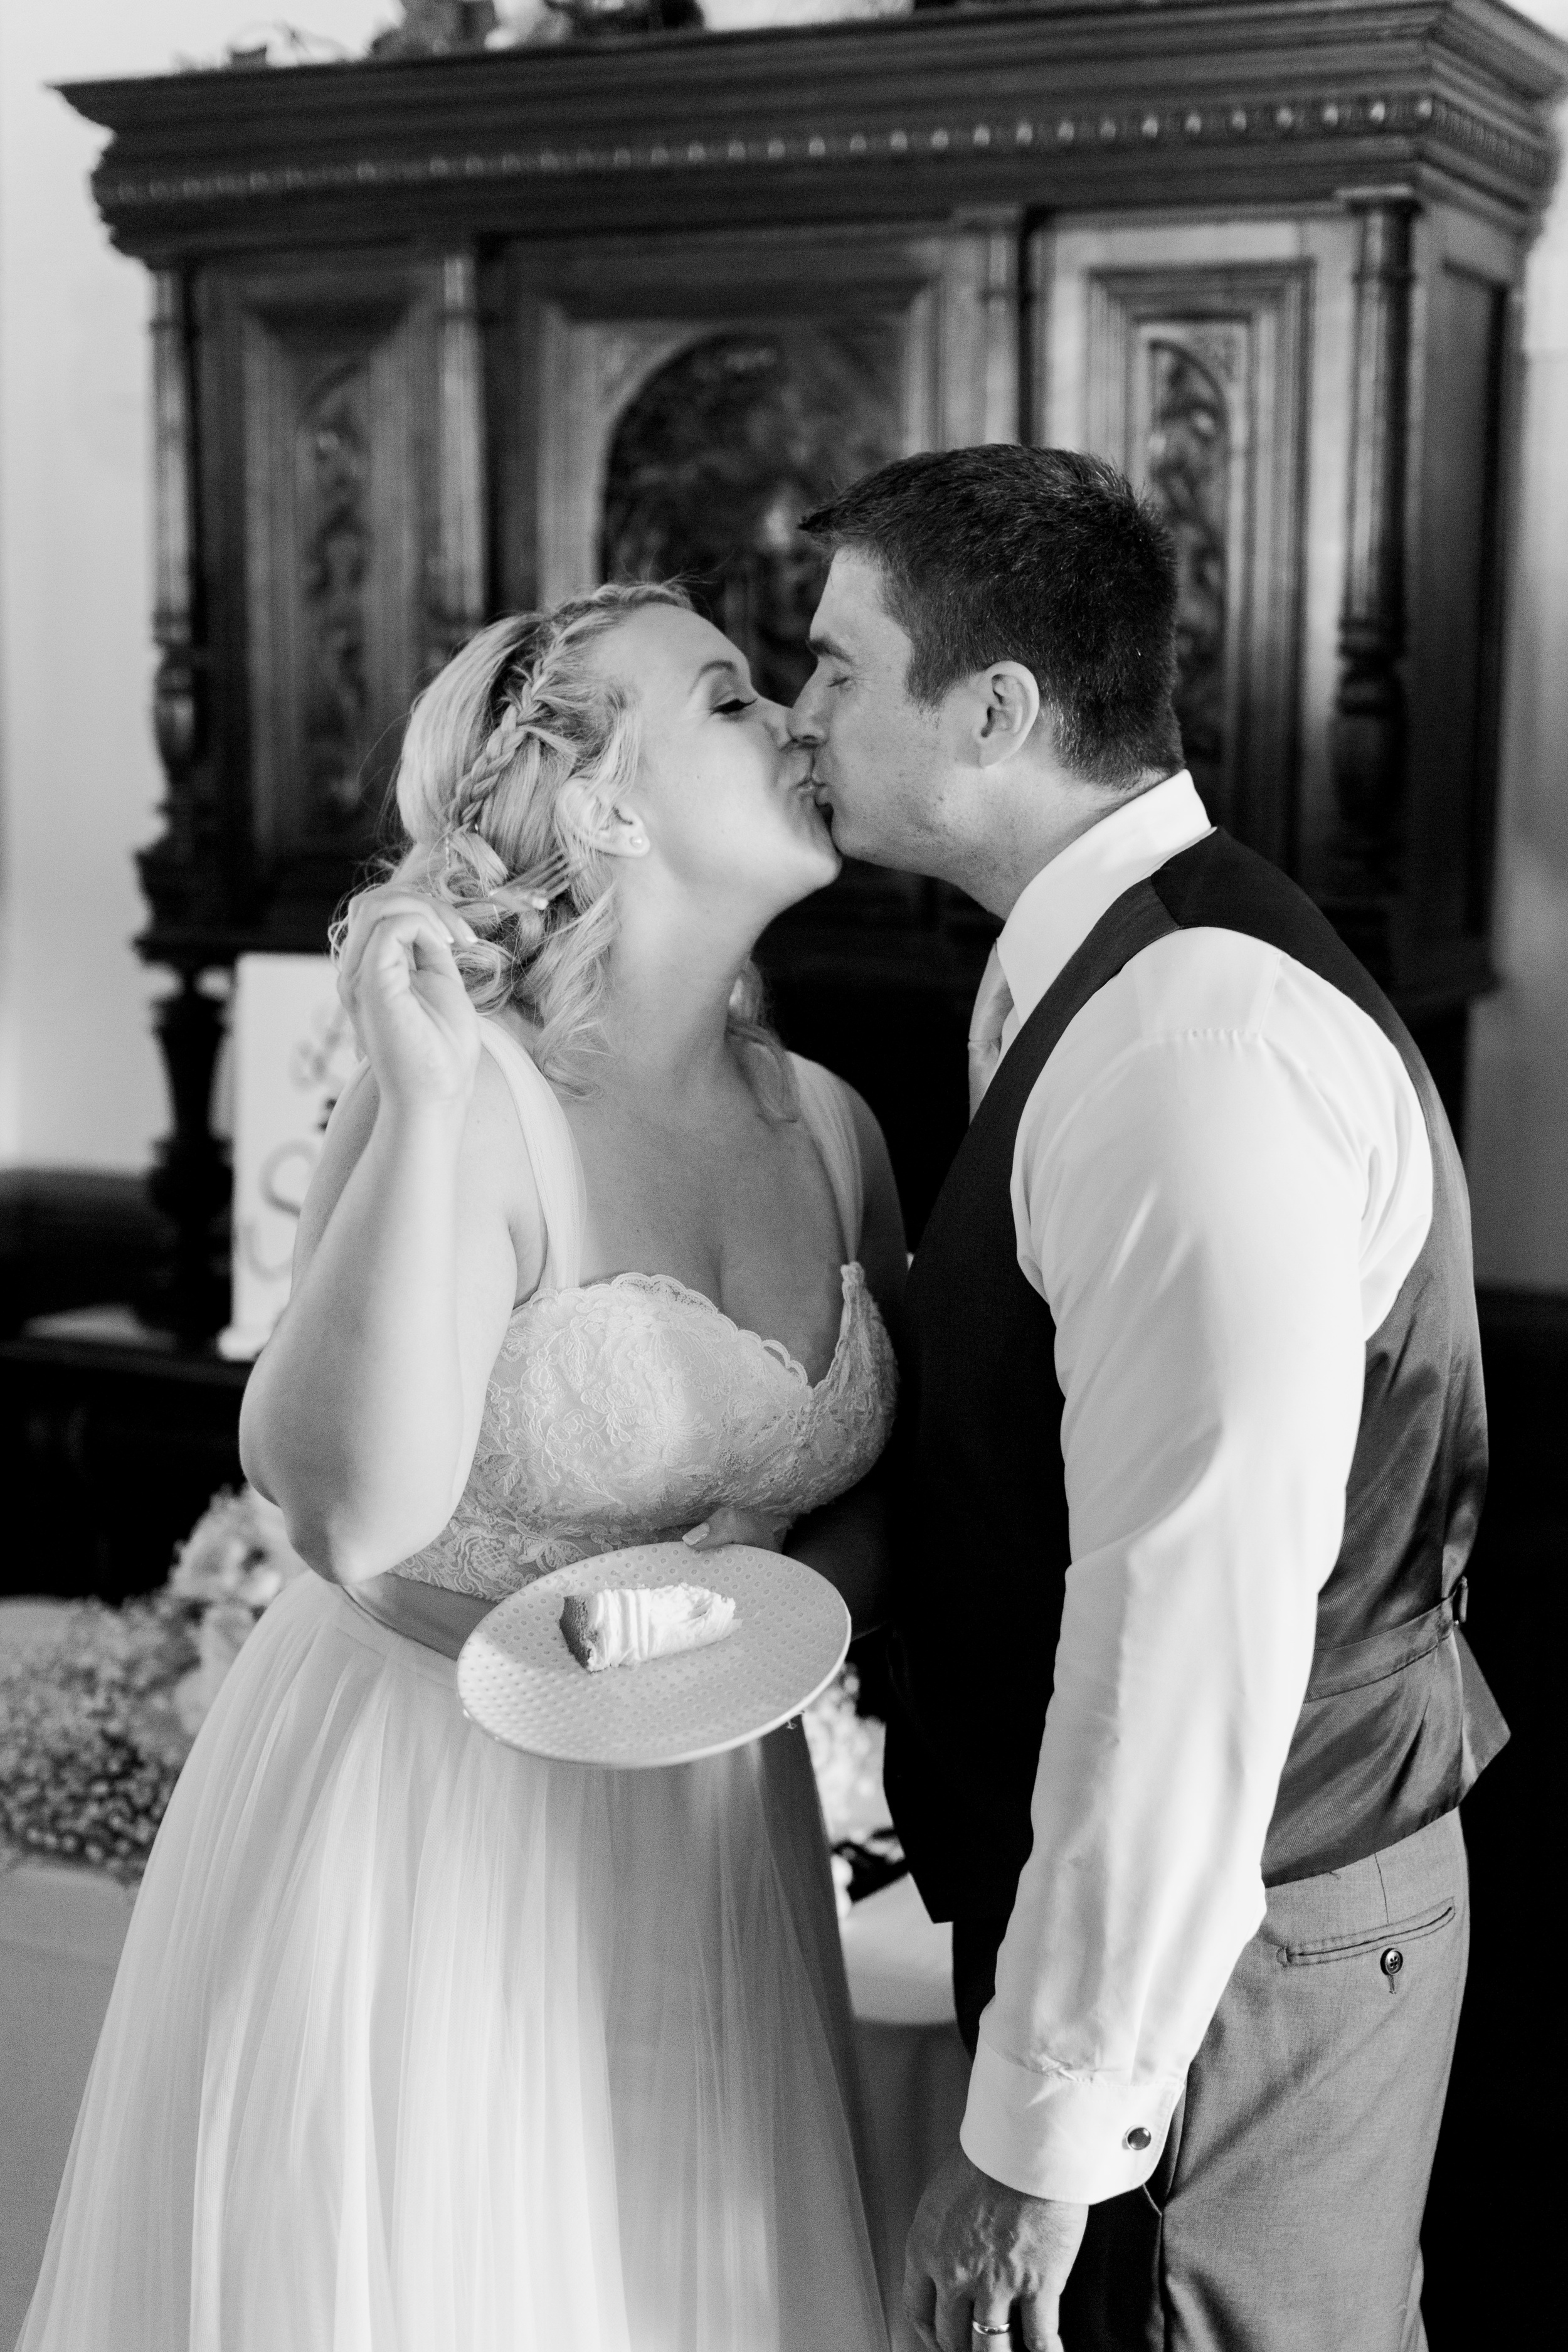 southern-inspired-wedding-at-ravenswood-historic-site-5819.jpg